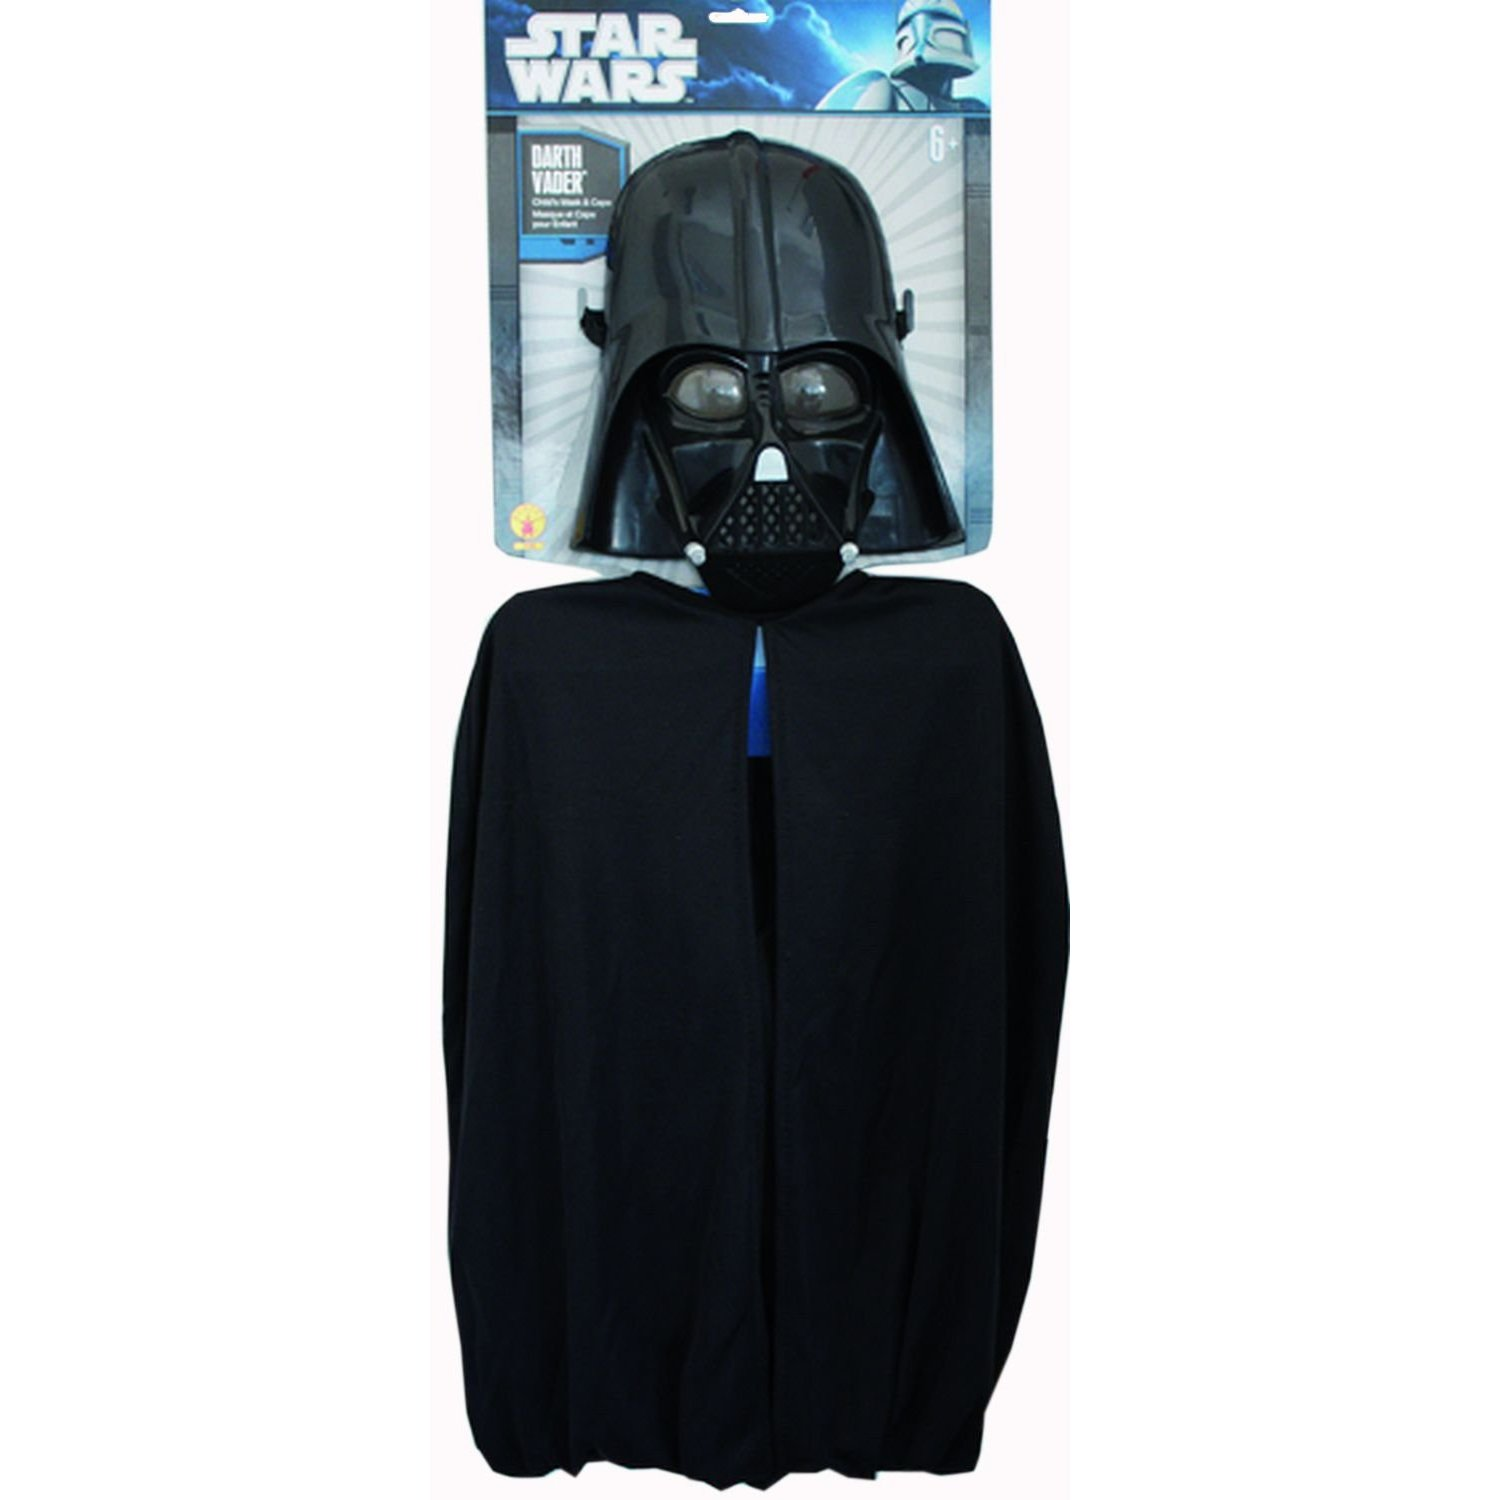 Darth Vader cape & mask set 1198